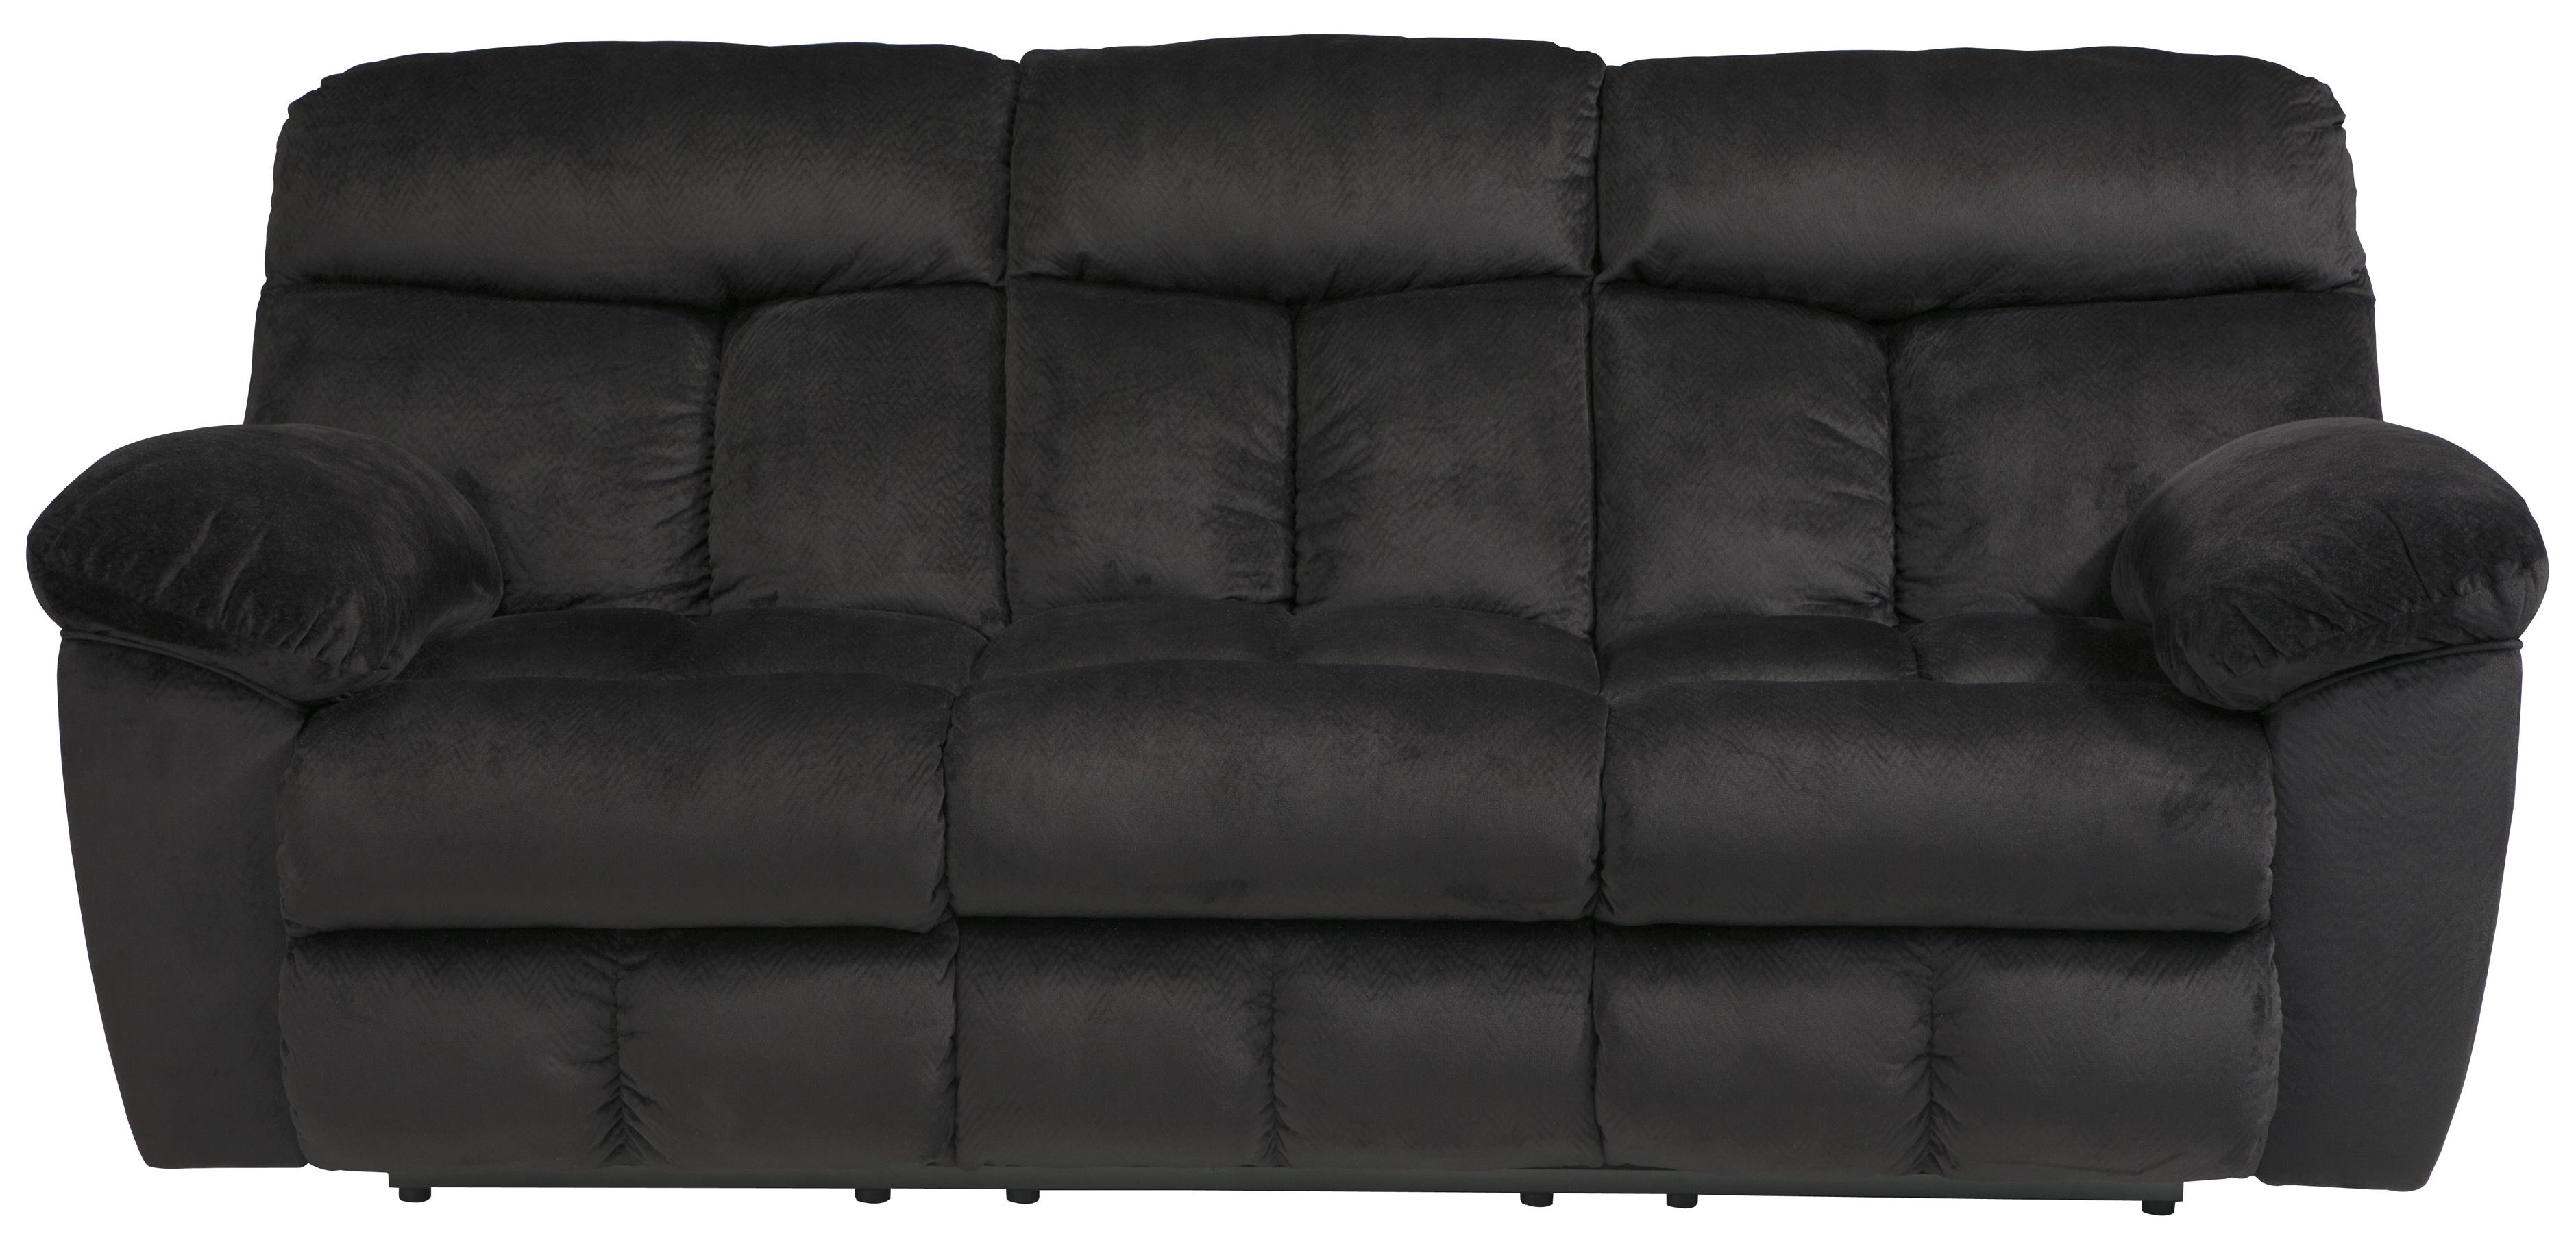 Signature Design by Ashley Saul Reclining Sofa - Item Number: 2230188